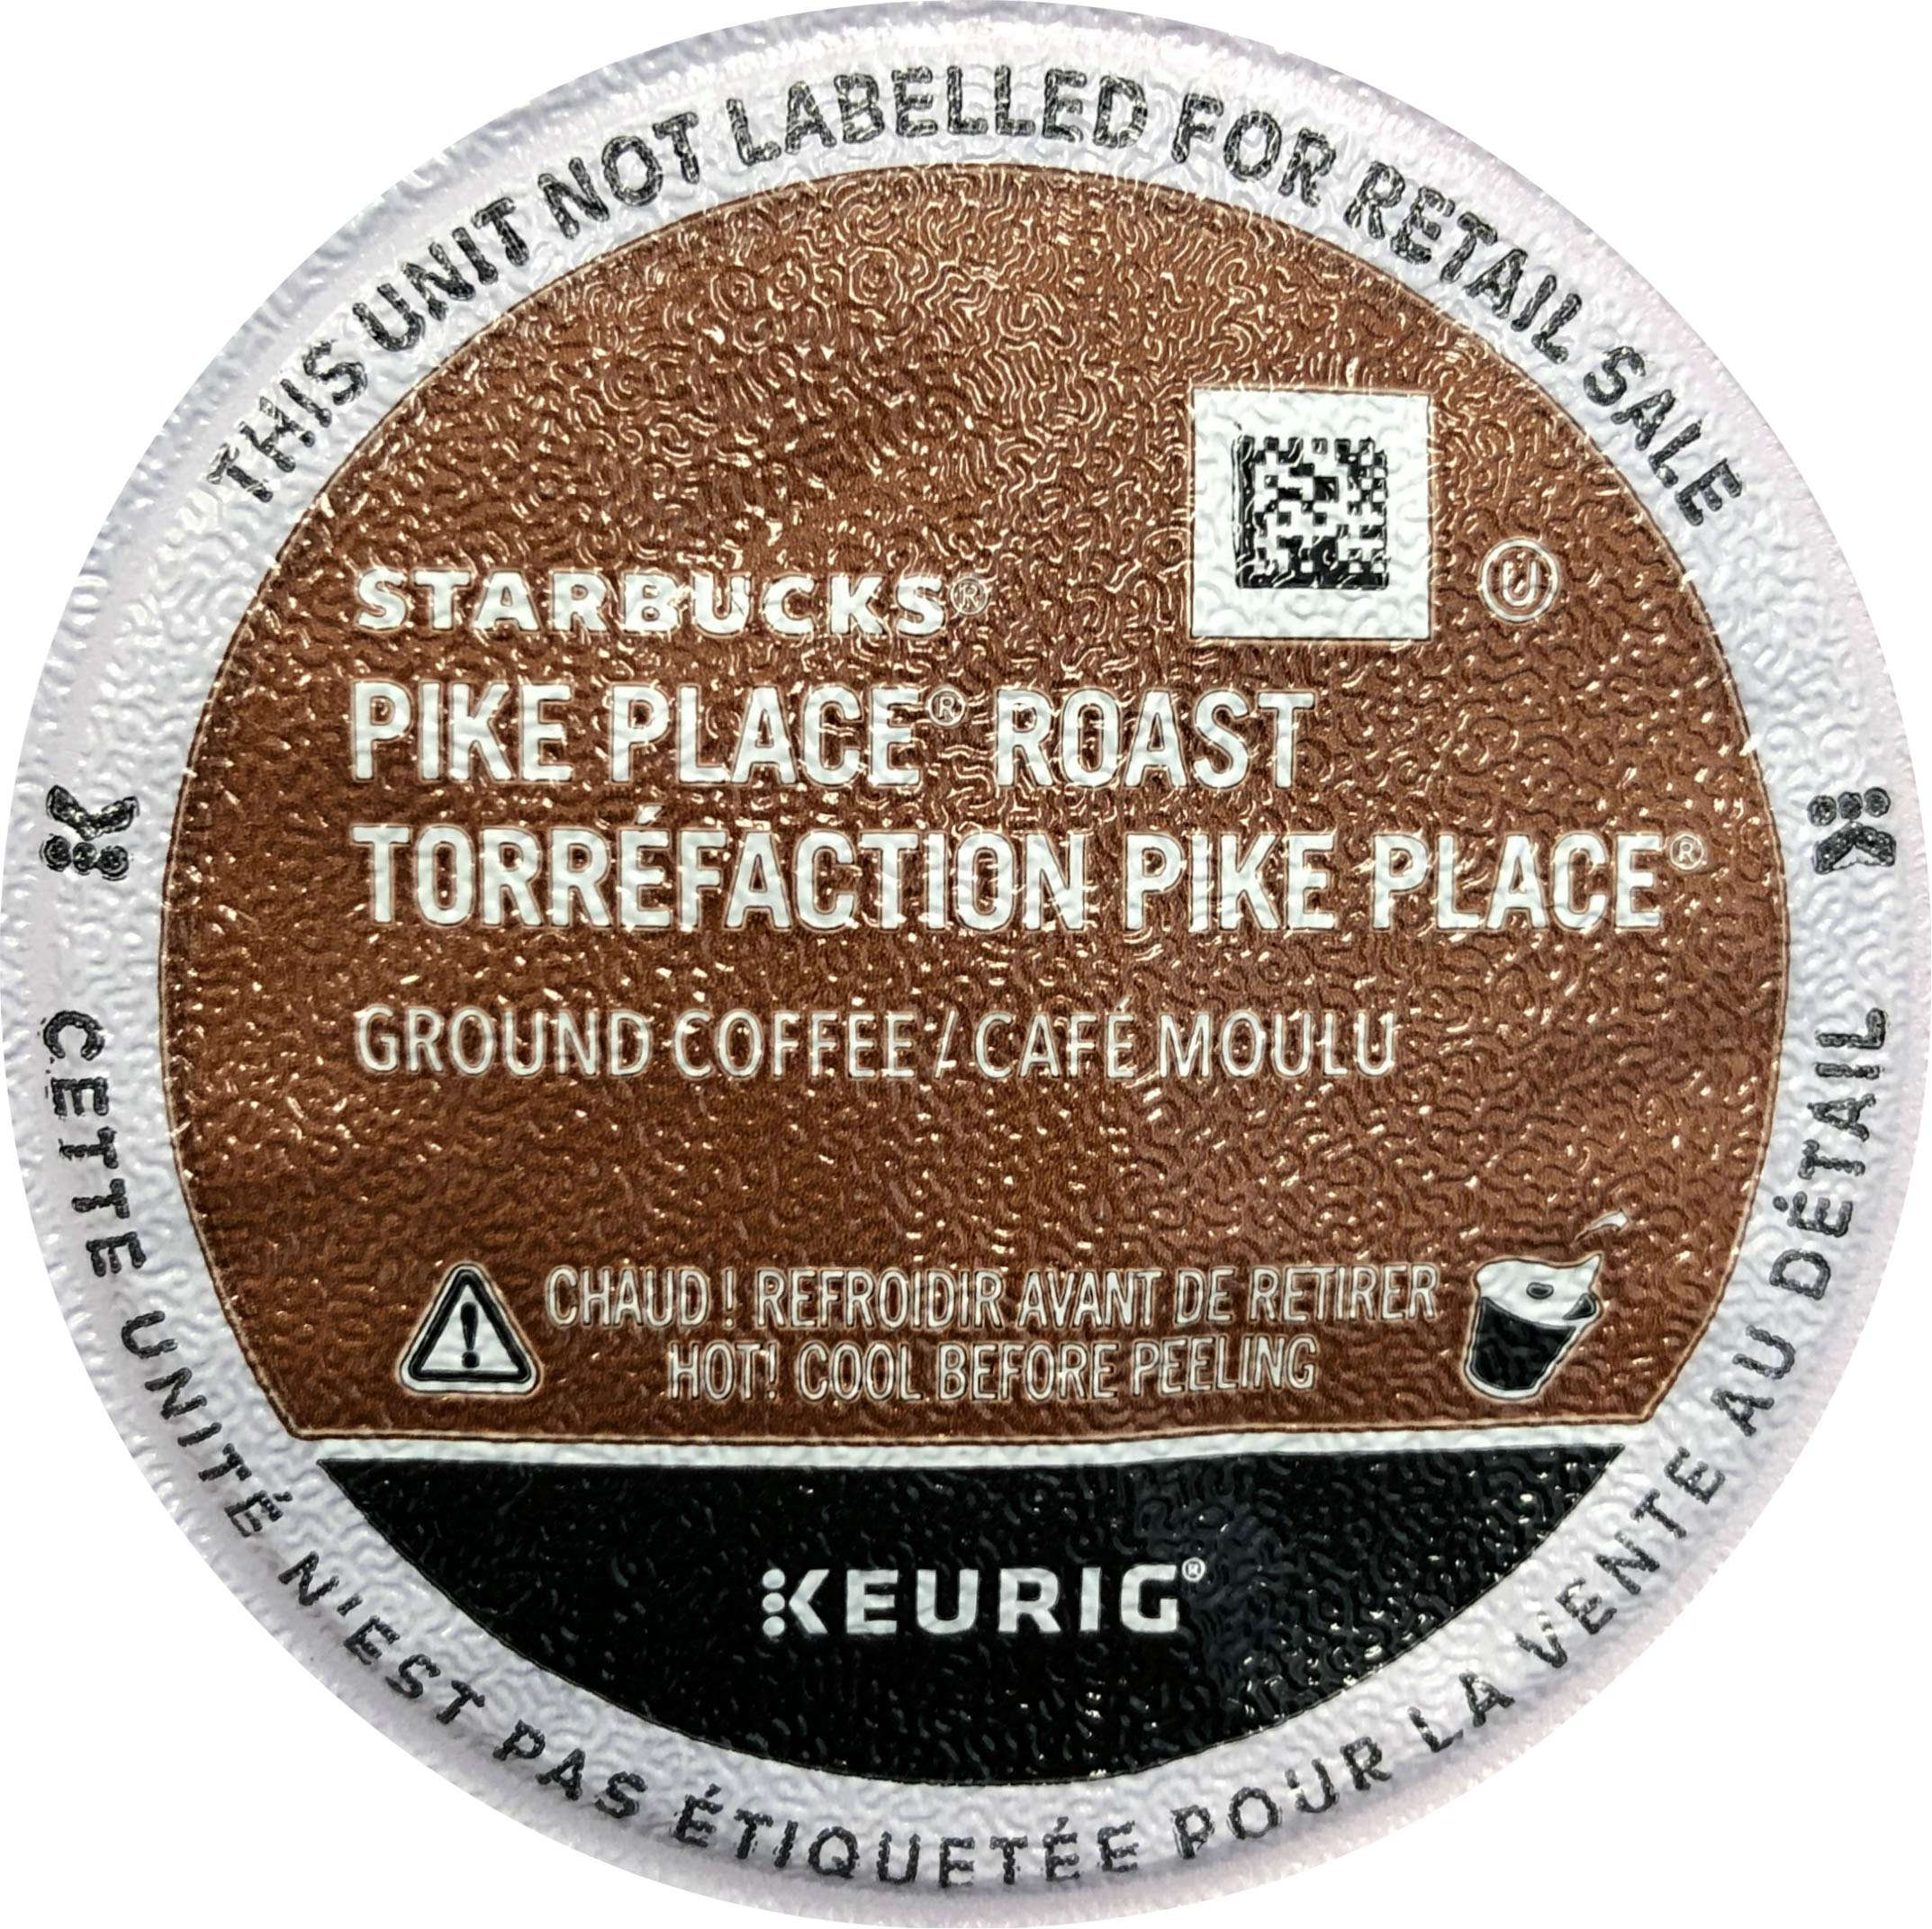 Starbucks Pike Place Roast Coffee K-Cup Portion Packs for Keurig Brewers, 72 Count (3 boxes of 24 K-Cups)